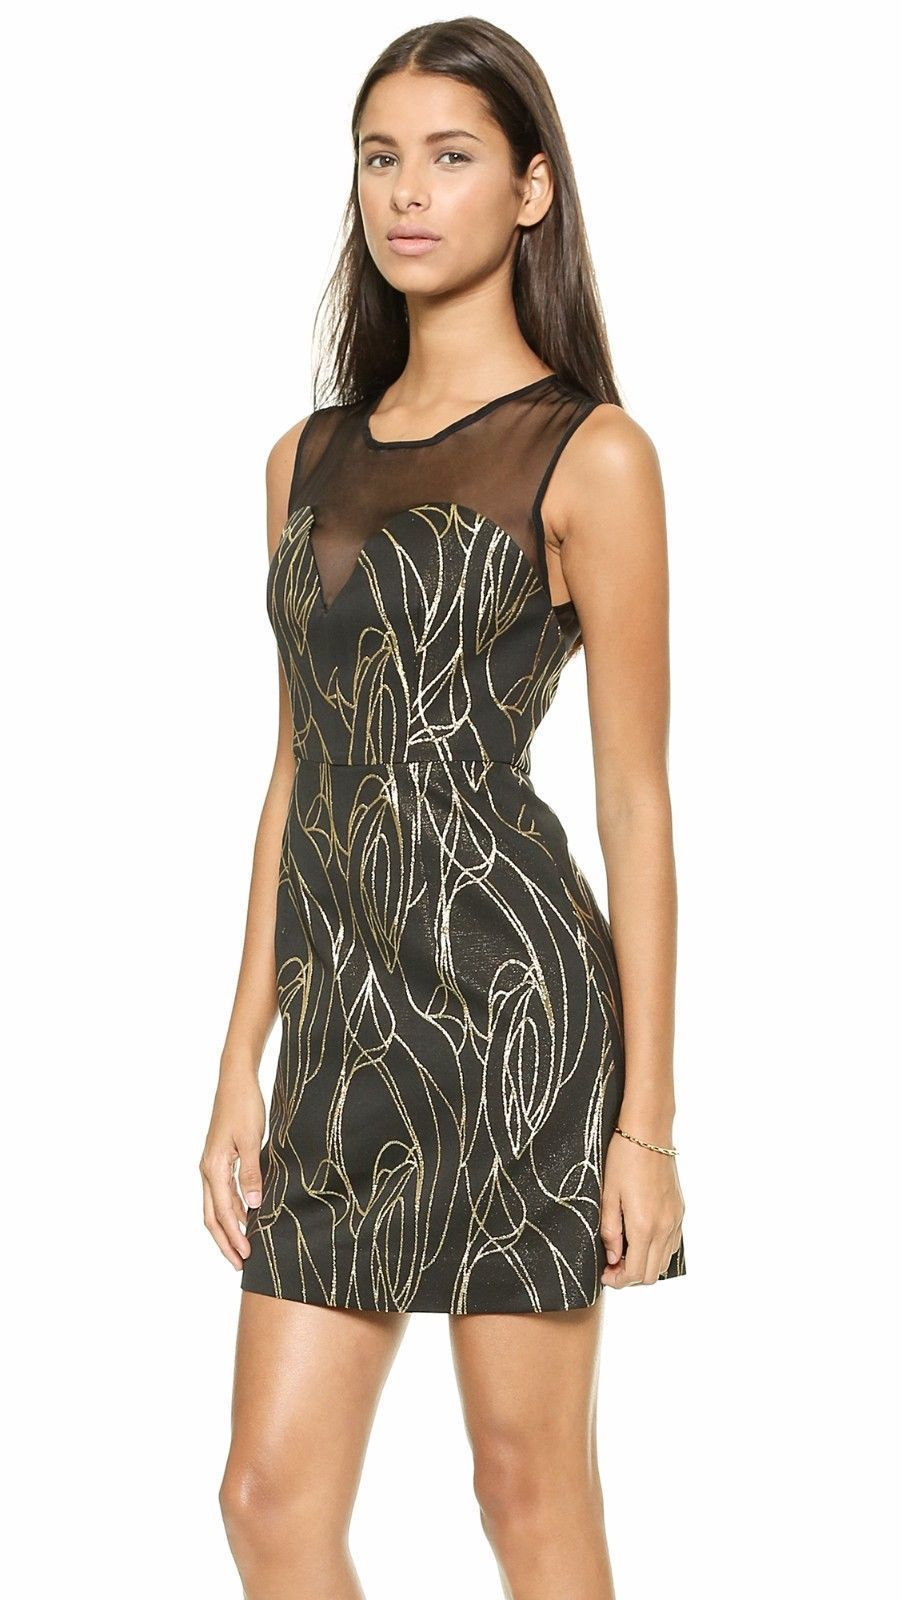 Milly Dress: 55 listings